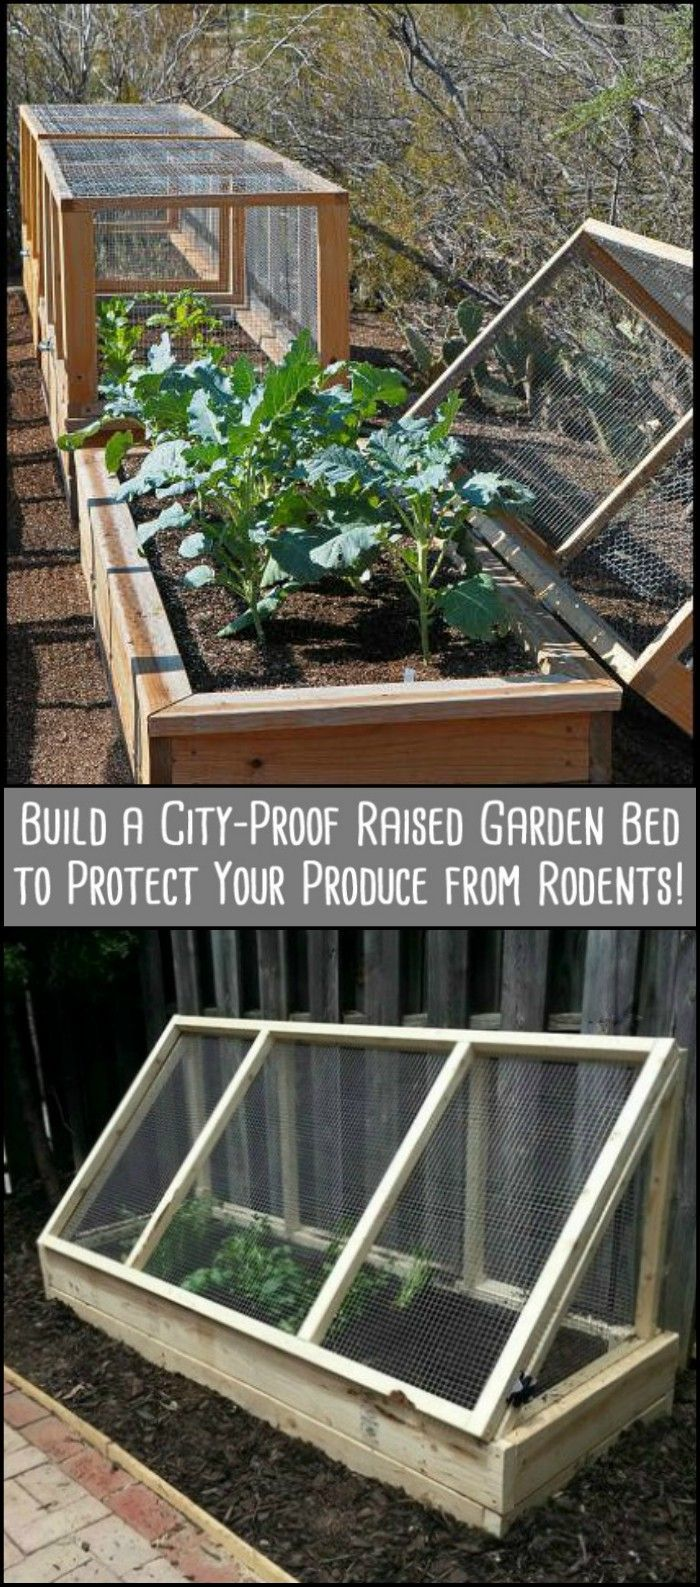 Protect Your Produce from Rodents by Building This City-Proof Raised Garden Bed  -